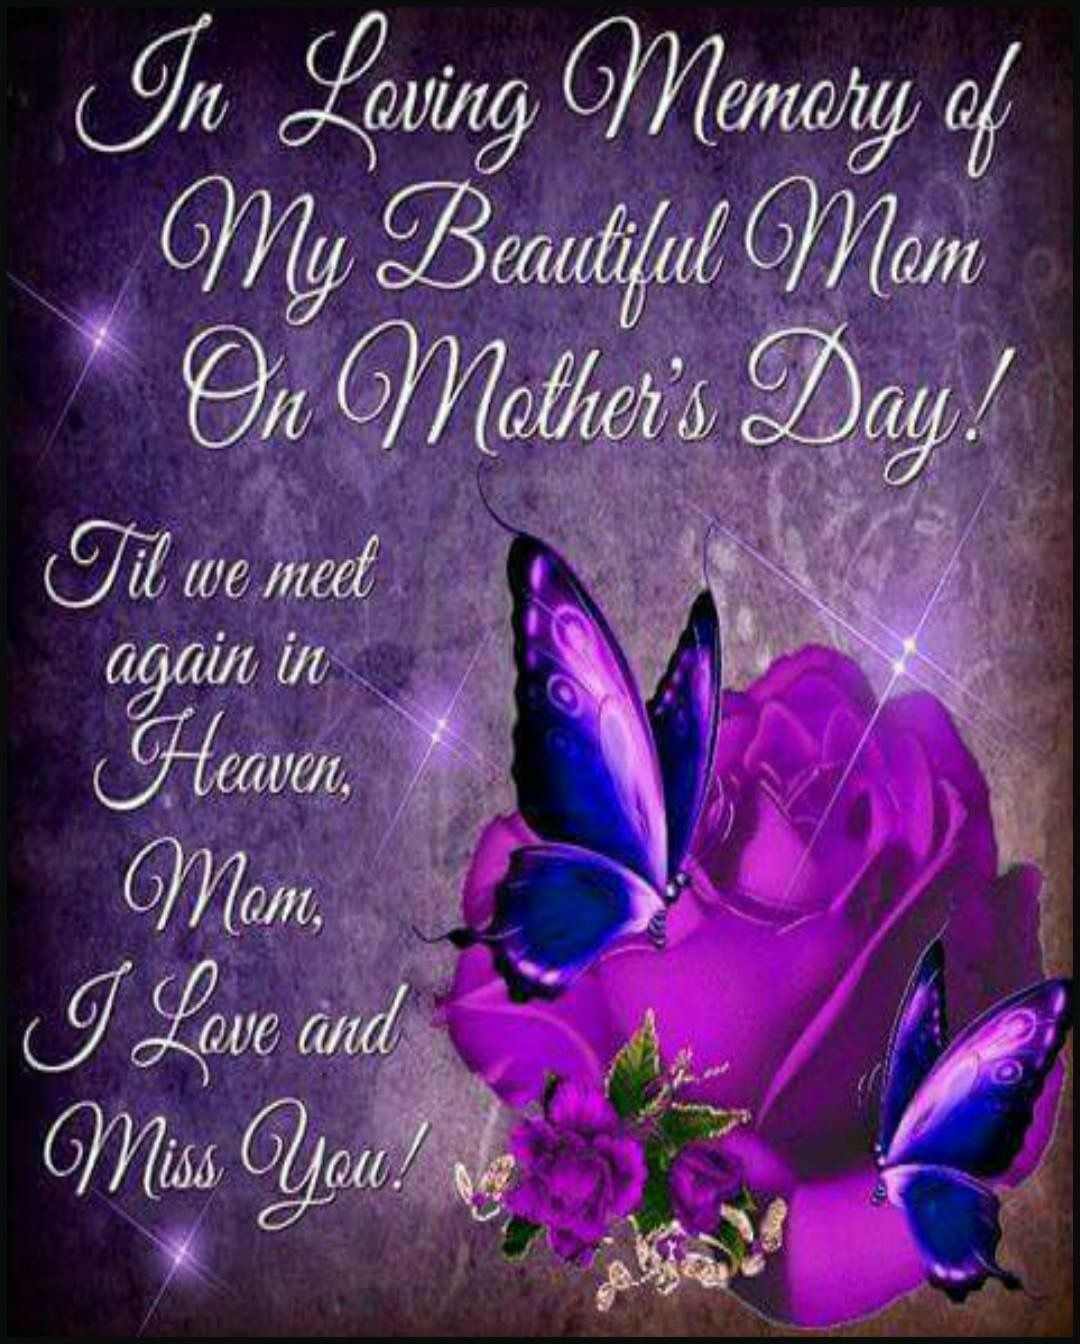 Pin By Barb Berry On Flowers Pinterest Mom Happy Mothers And